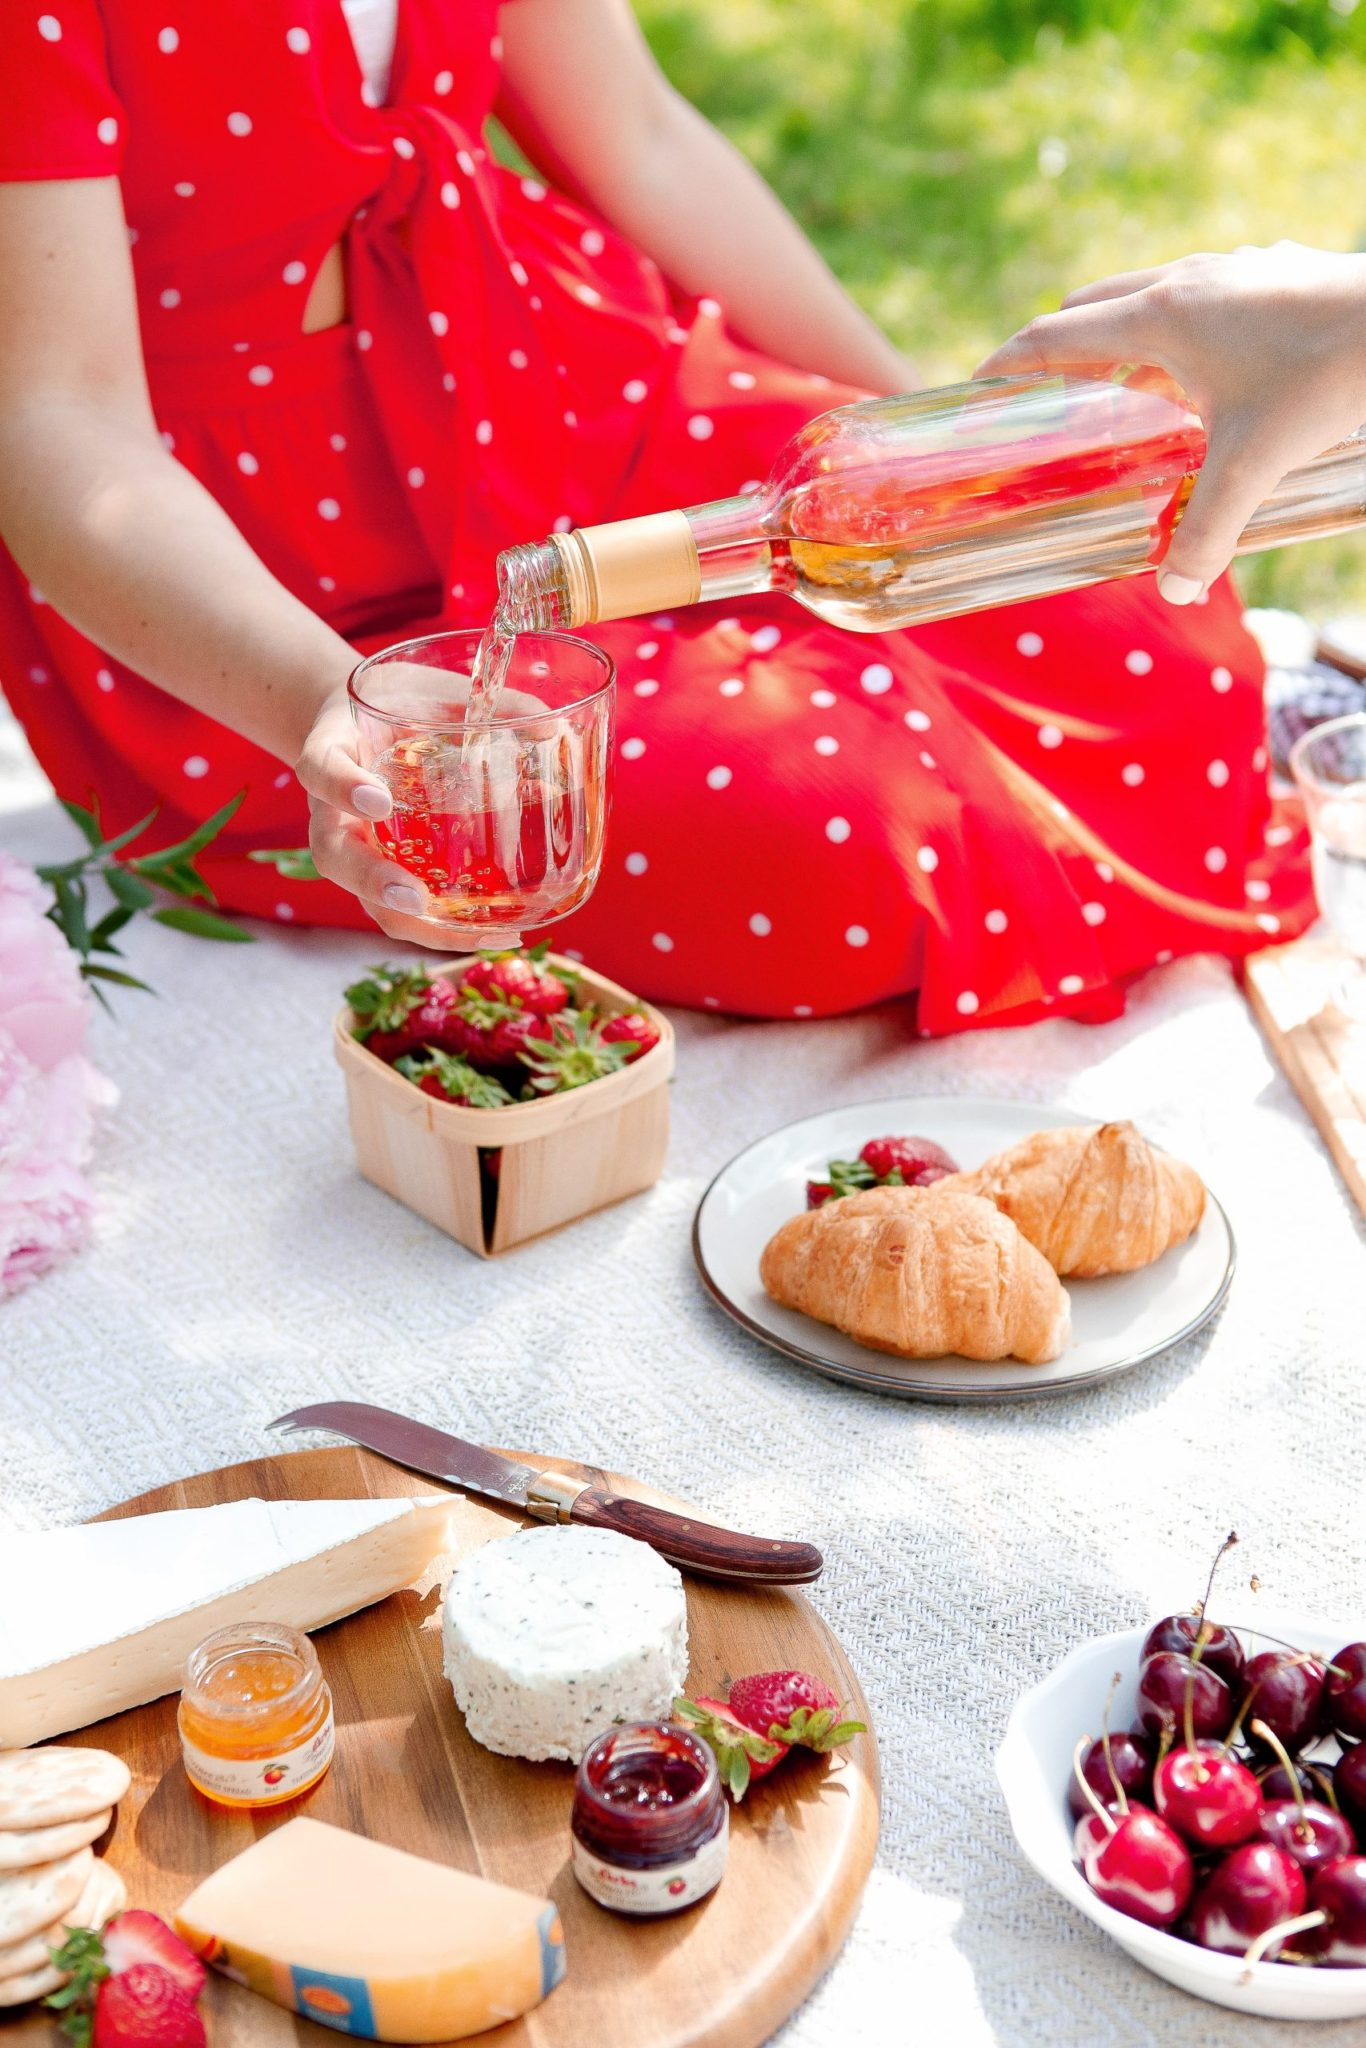 Gourmet picnic ideas for a romantic date, or for an elegant outdoor adult party with friends. Find the best and delicious gourmet food ideas, gourmet sandwiches, and gourmet recipes and fancy picnic food inspiration for healthy garden parties, and how to host an elegant outdoor DIY picnic for adults. #gourmetfoodideas #adultpicnic #picnicfoodideas #picnicparty #gourmetpicnicfood